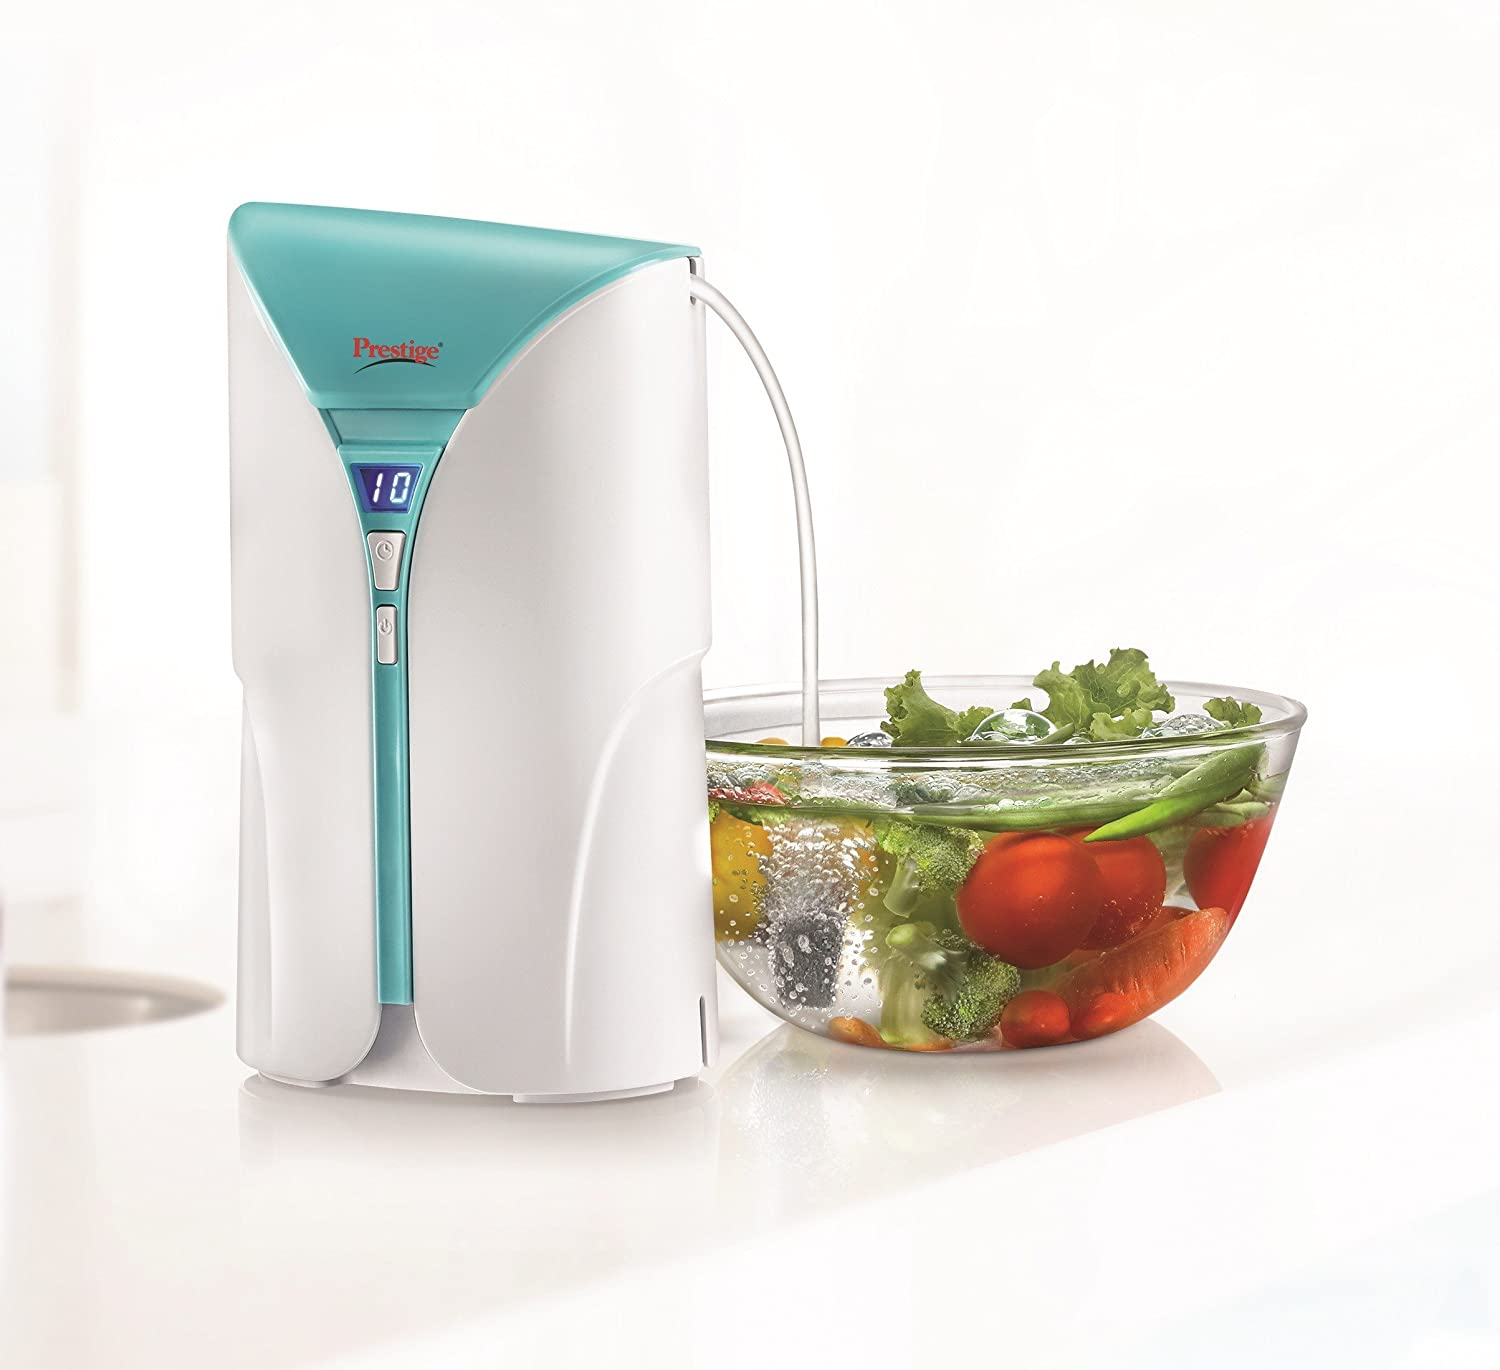 Prestige Clean Home Poz 1.0 Ozonizer Vegetables, Fruits, and Sea Food Purifier